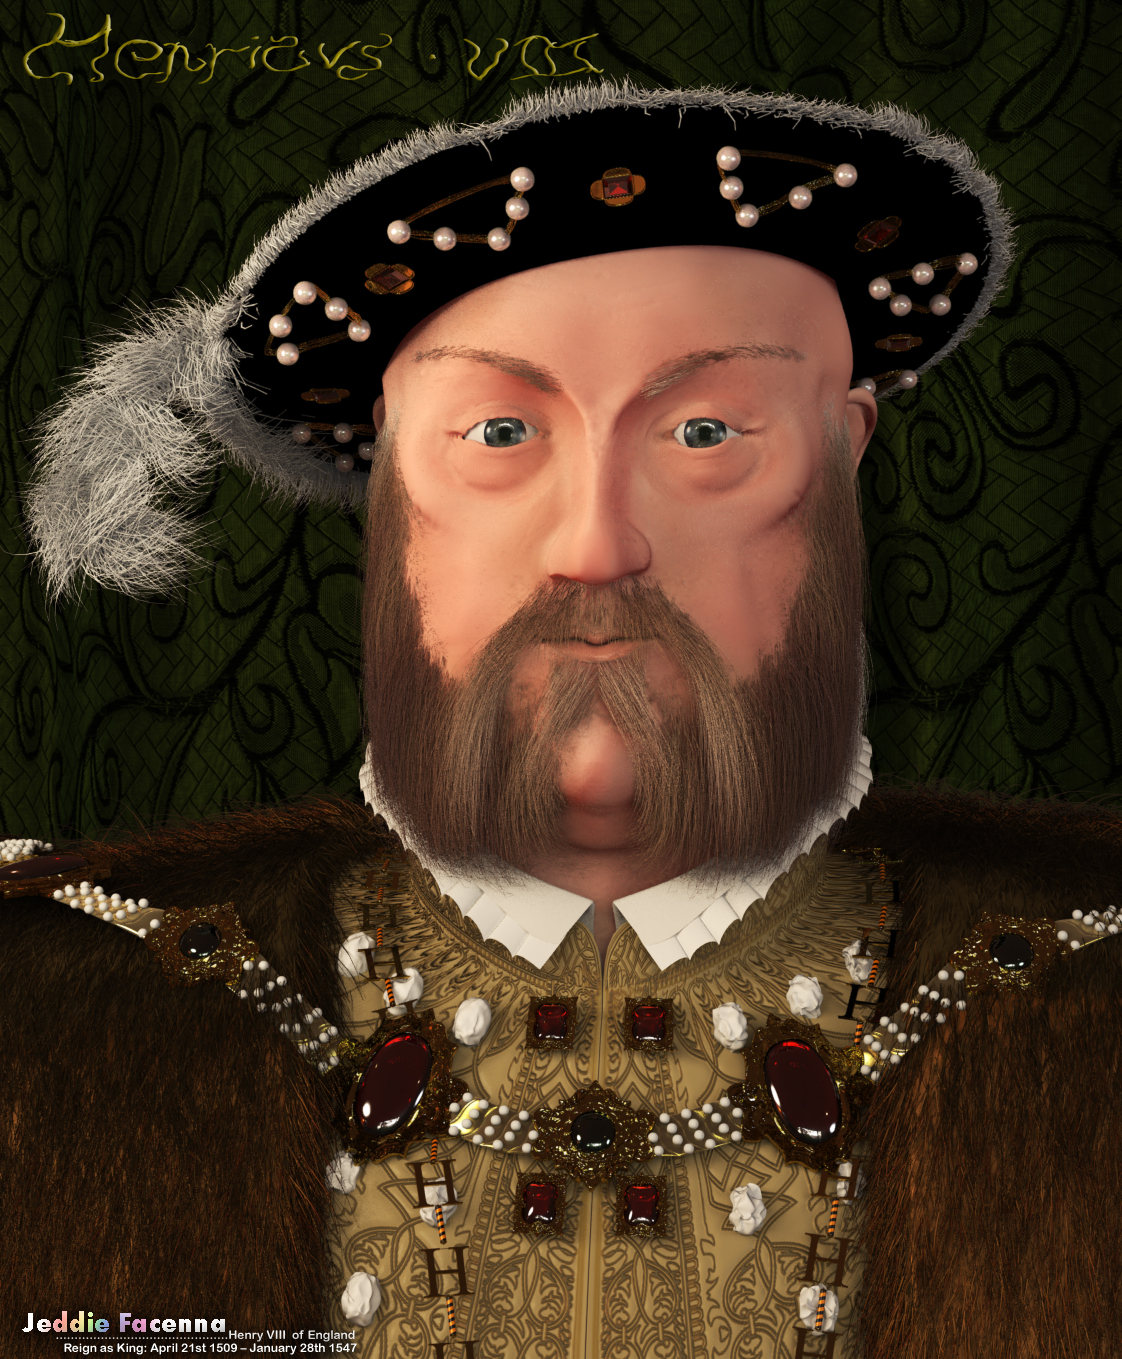 henry viii The birth of henry viii's legitimate son, prince edward, led directly to the destruction of the manor of cuddington to celebrate both the securing of the succession and the arrival of the 30th year of his reign, henry decided to build a palace which would have no equal - hence the name, nonsuch.